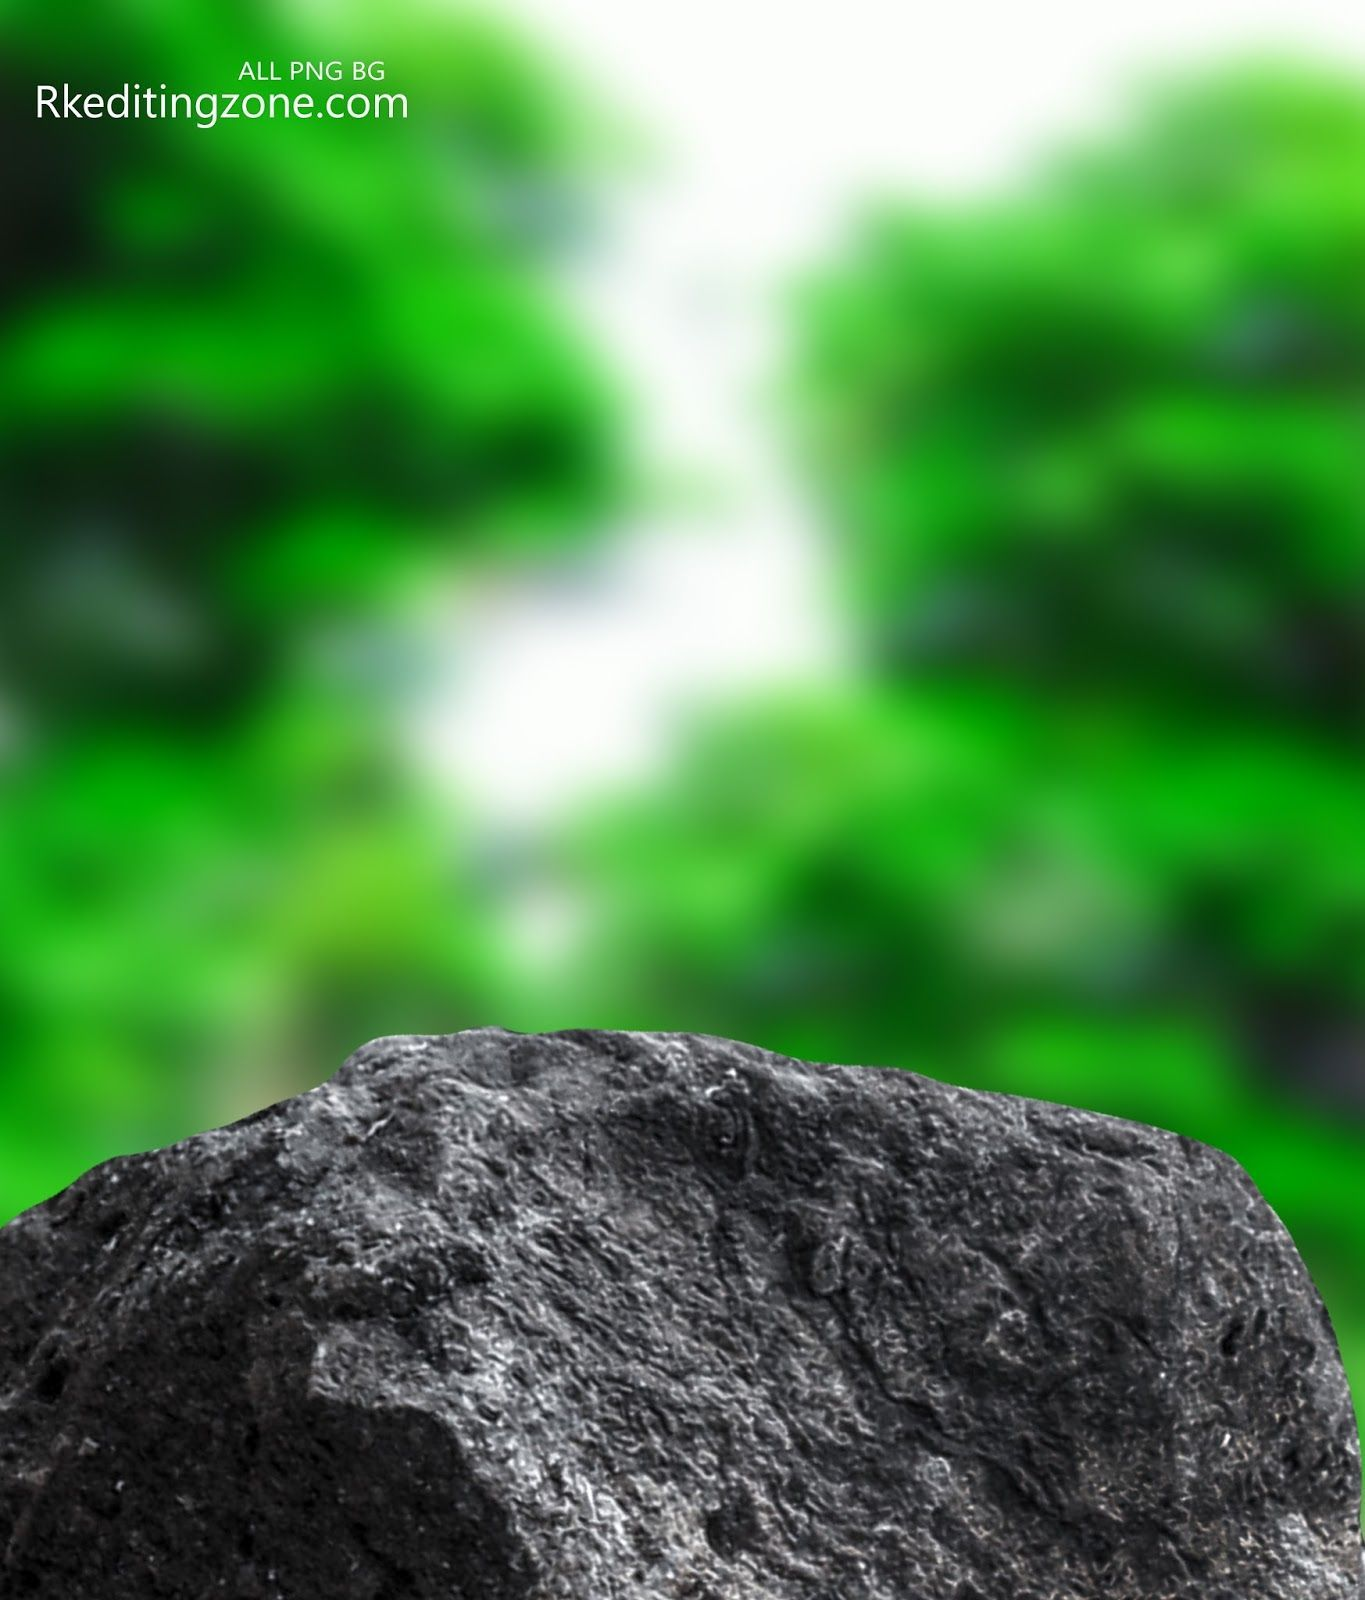 Hd Png Background - Background Images Png Hd (+) - Free Download   fourjay.org